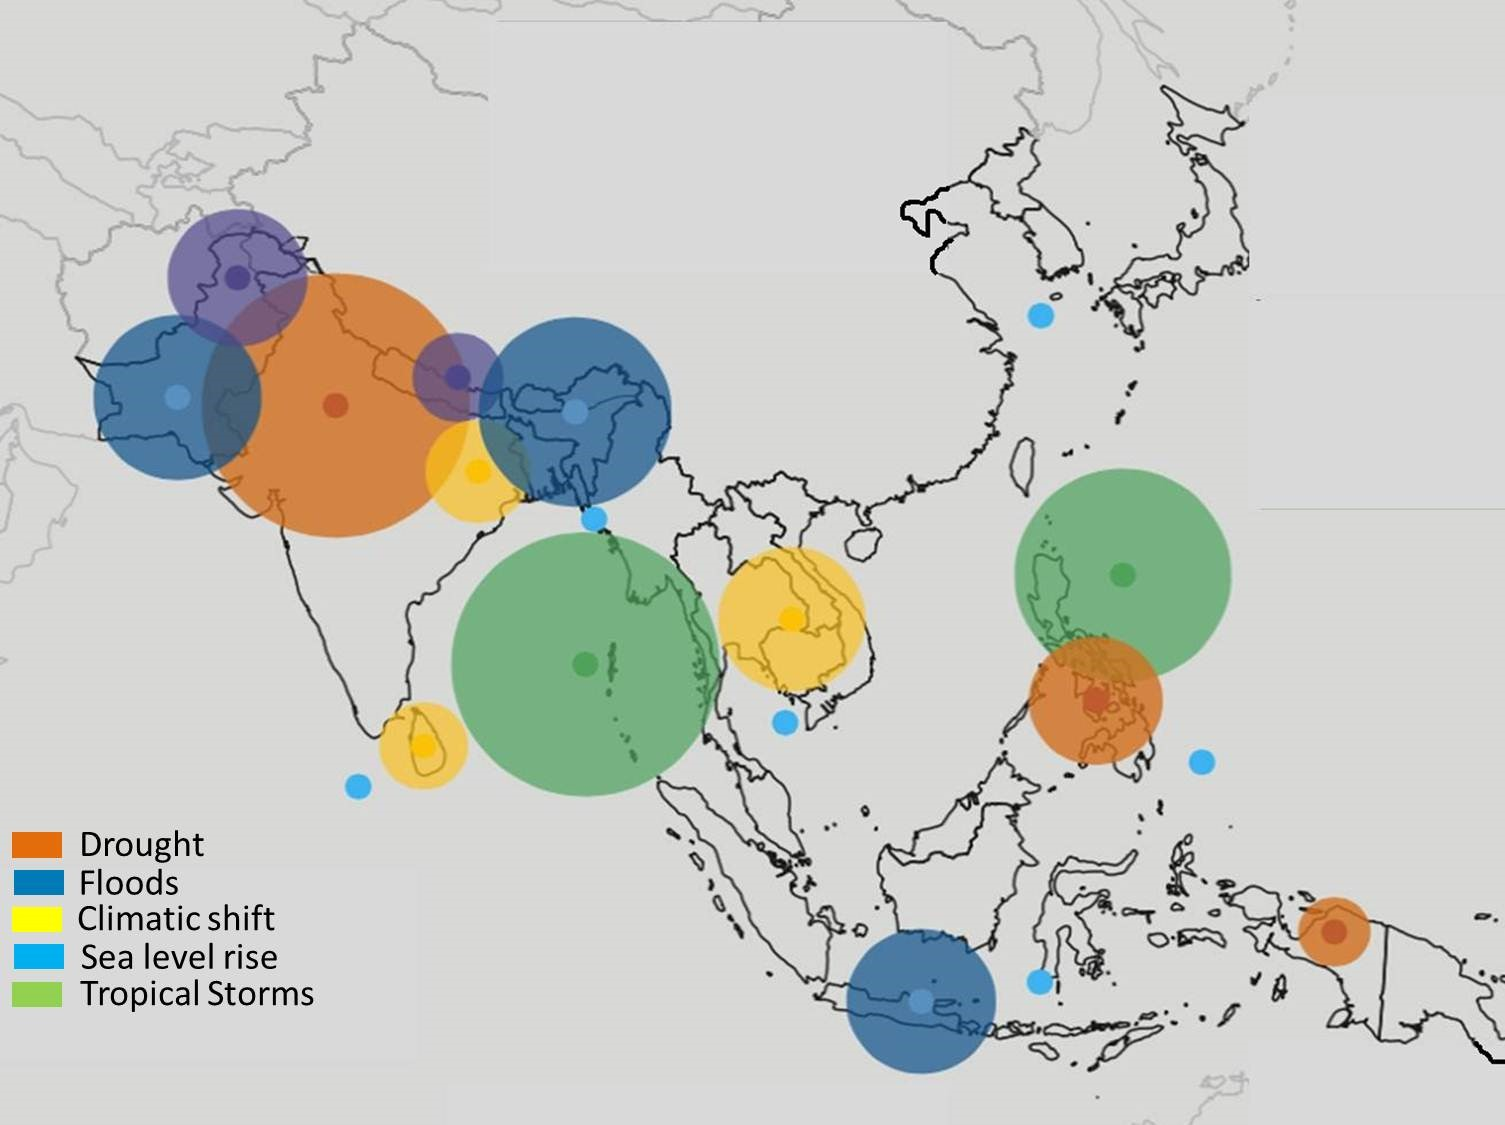 Climate-related risks in Asia Source: modified from Krishnamurthy et al., 2015